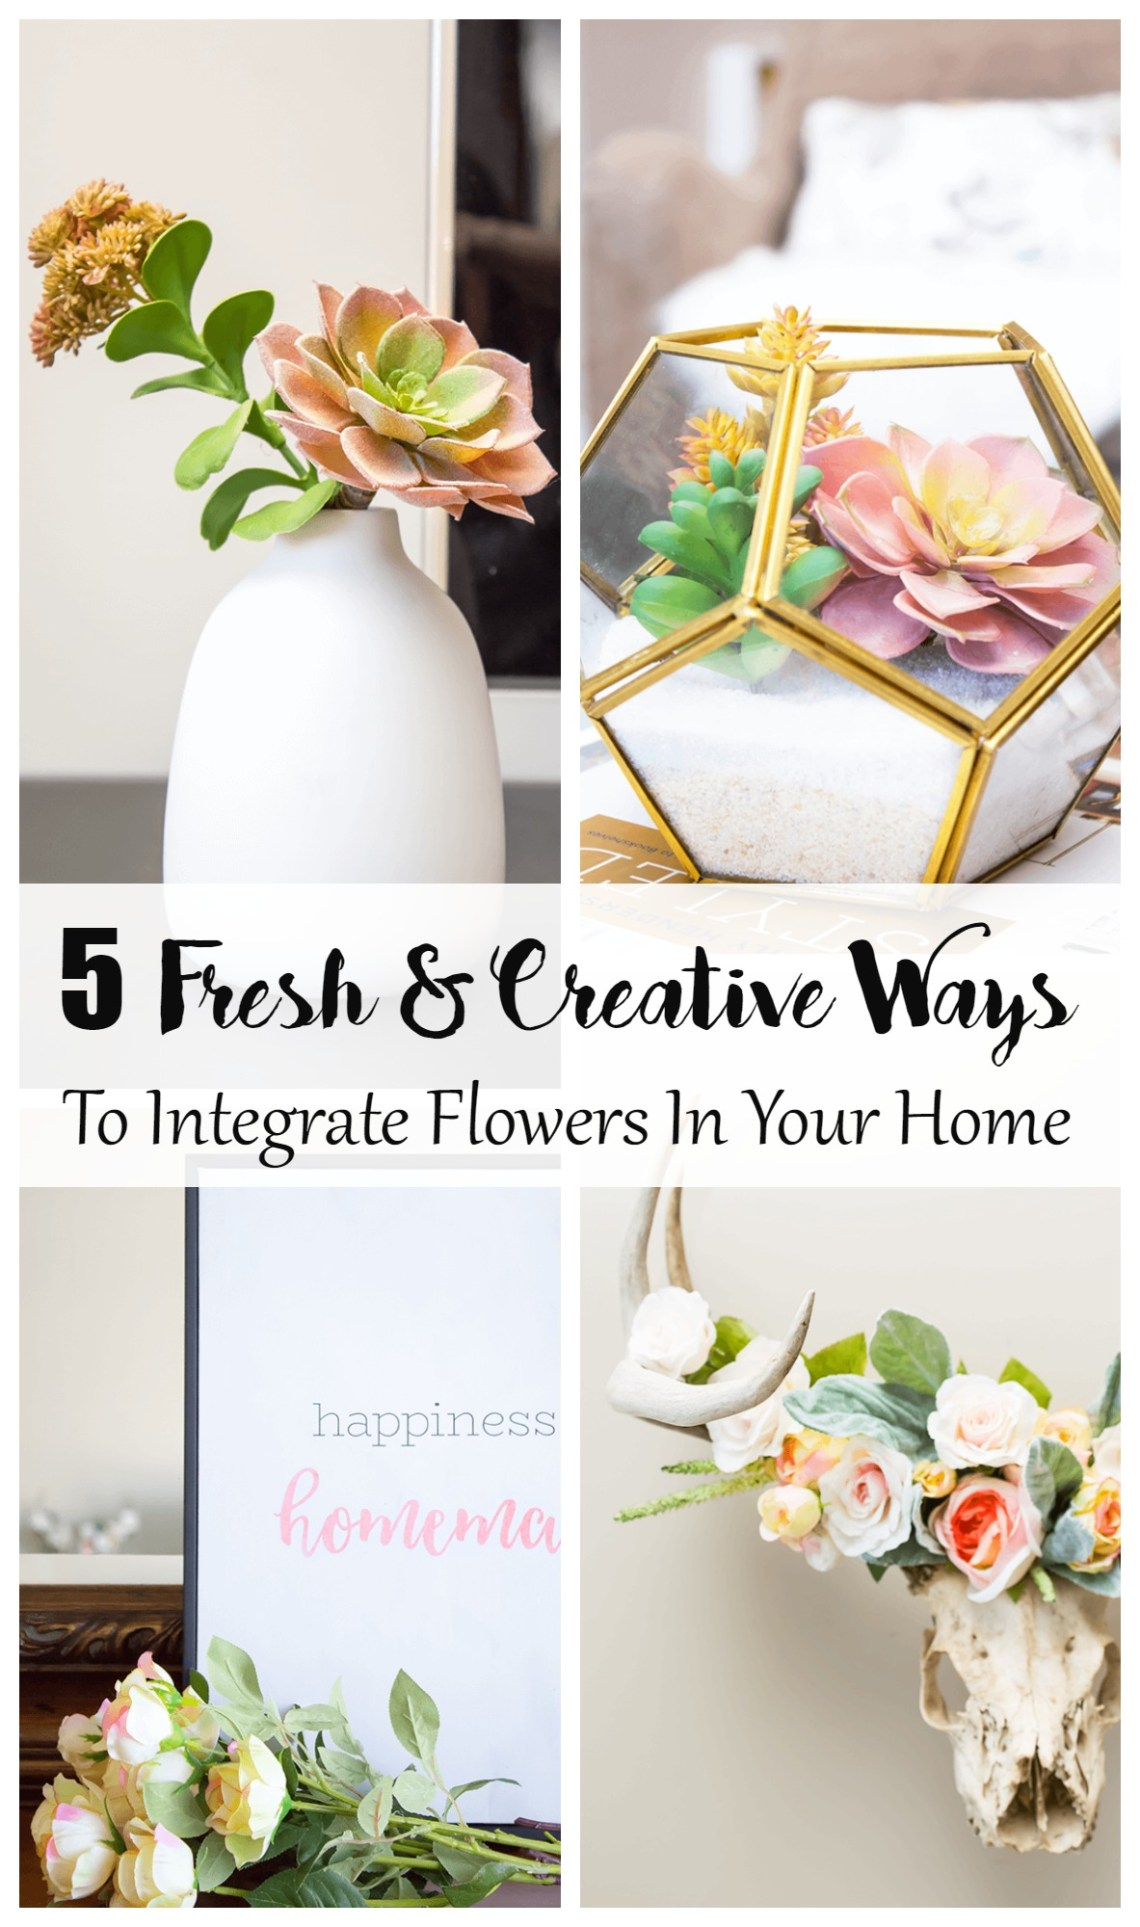 Finding fresh and creative was to decorate with flowers should not be limited to a single floral arrangement in a vase. In this post, explore fun and inspiring ways to integrate floral decor. Visit aprettyfix.com for some fresh inspiration this season!